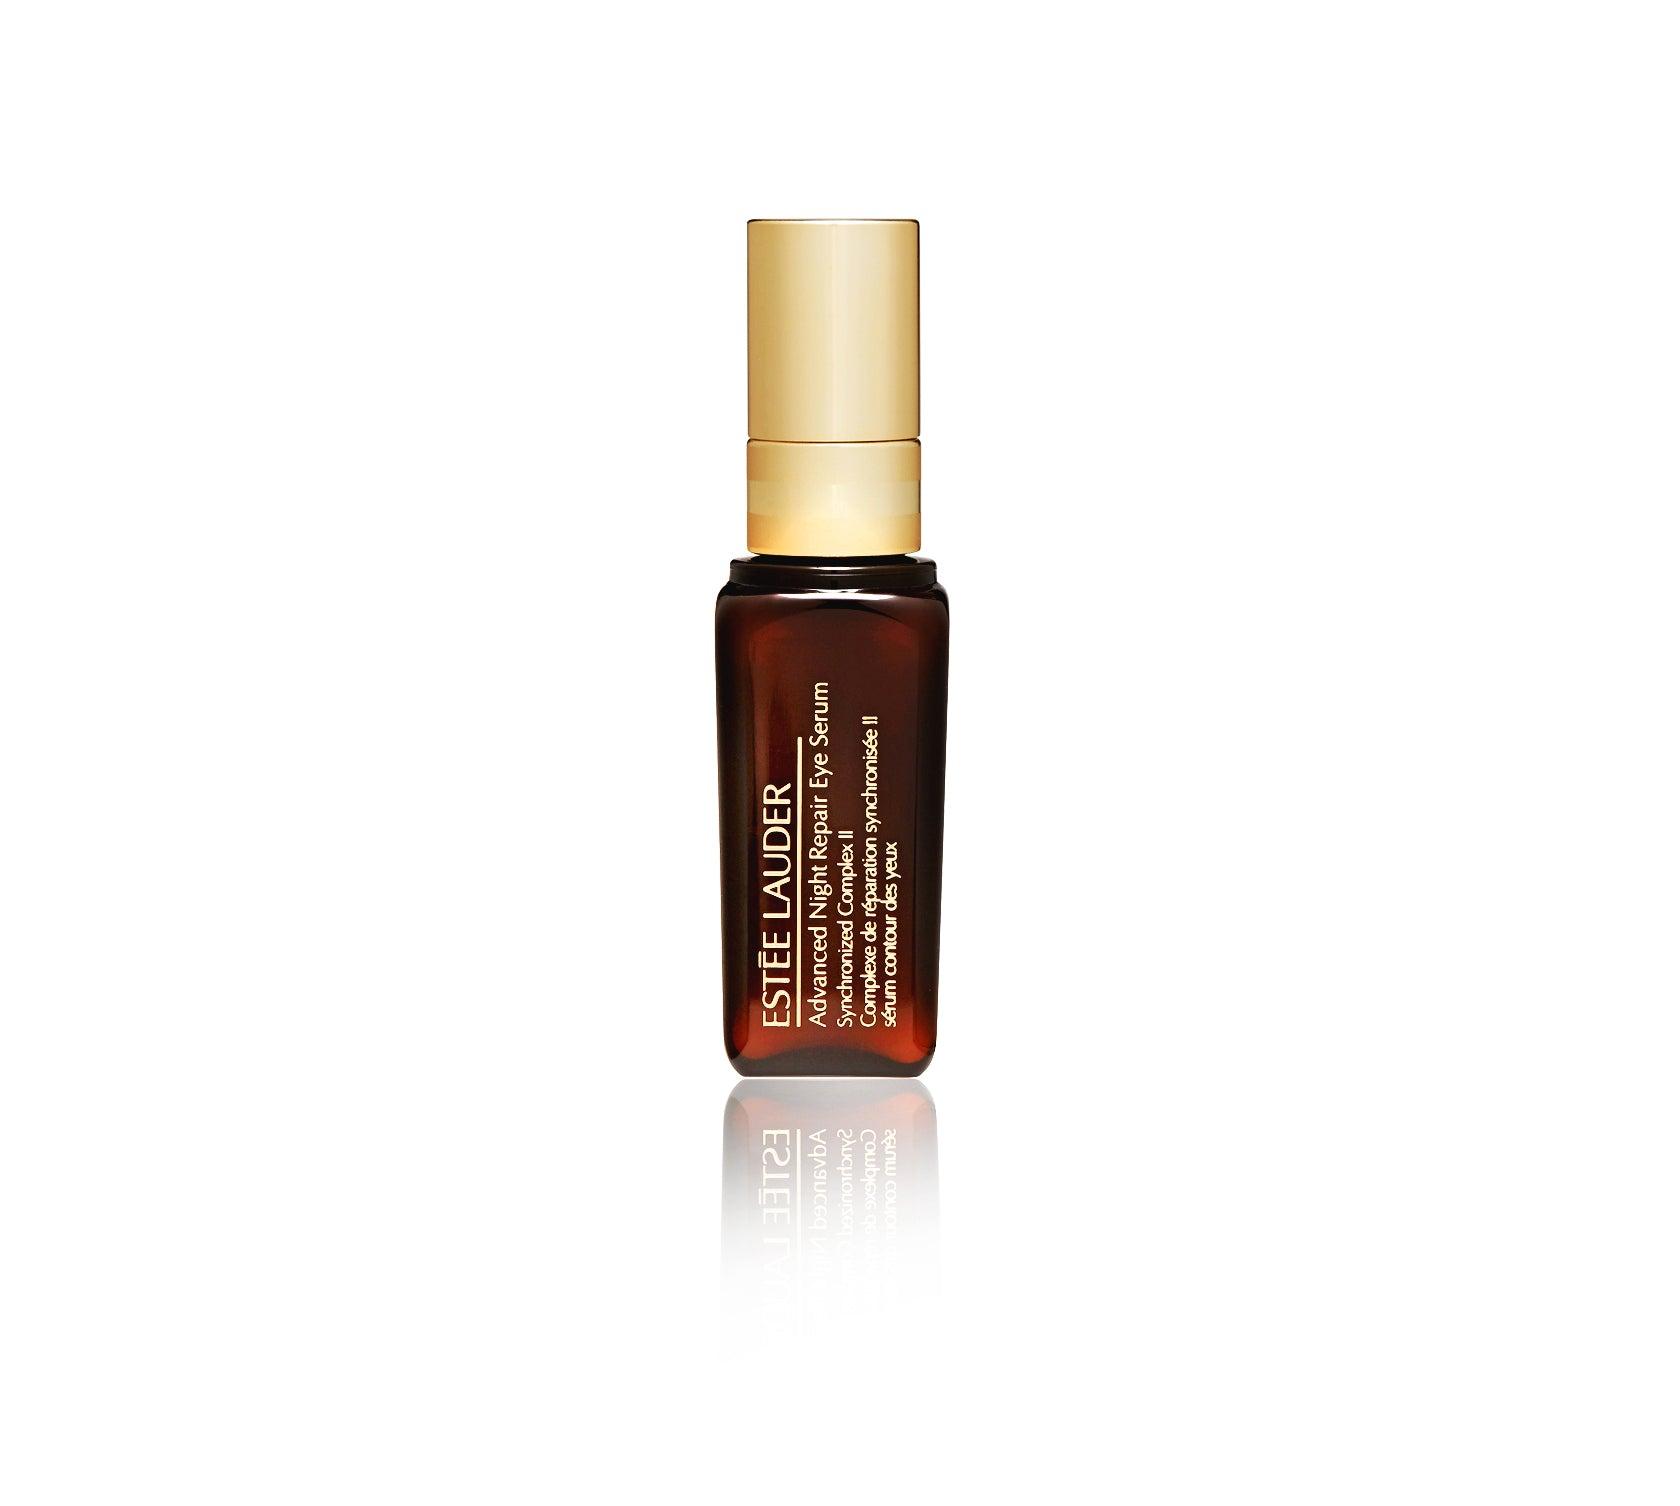 advanced-night-repair-eye-serum-synchronized-complex-ii